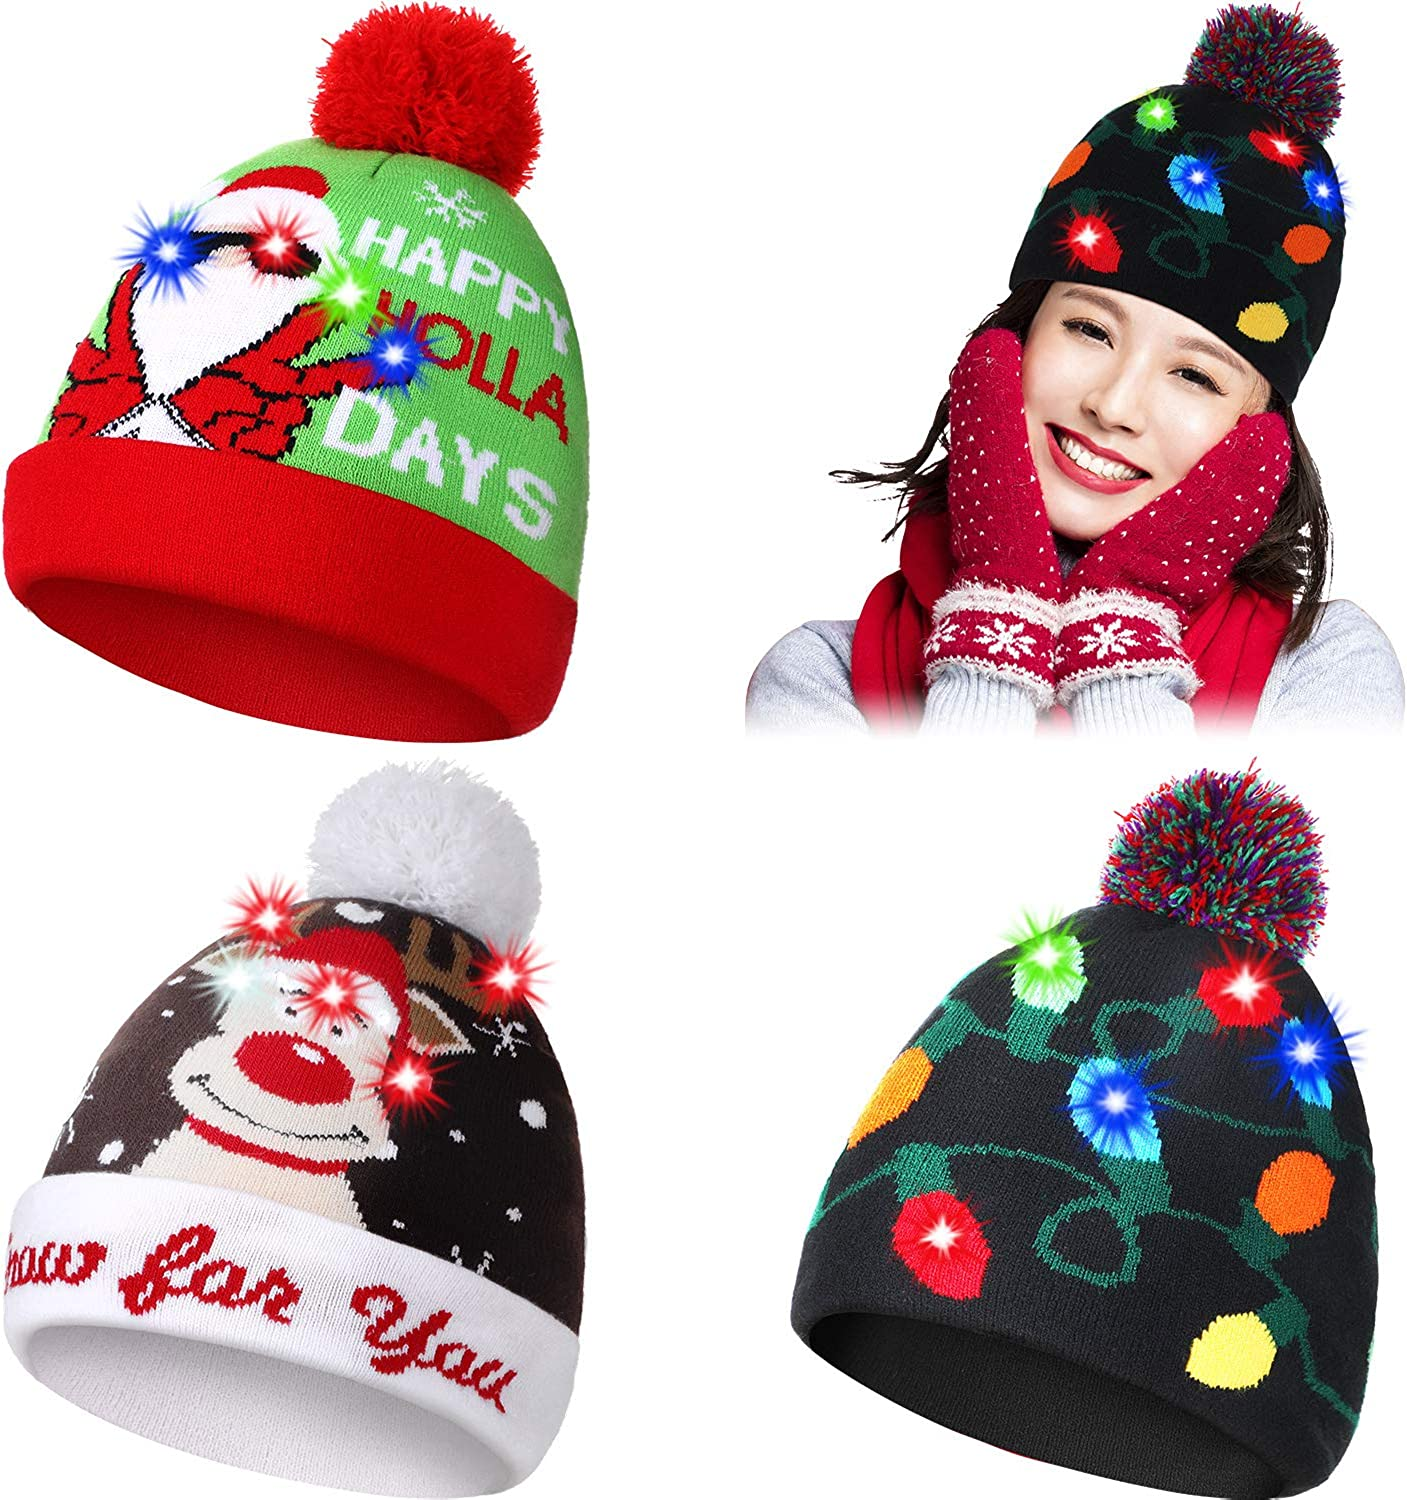 Geyoga 3 Pieces LED Light Up Christmas Hat Ugly Christmas Beanie Hat Knitted Xmas Hat Santa Winter Bulb Hat for Holiday Christmas Party Xmas Costumes